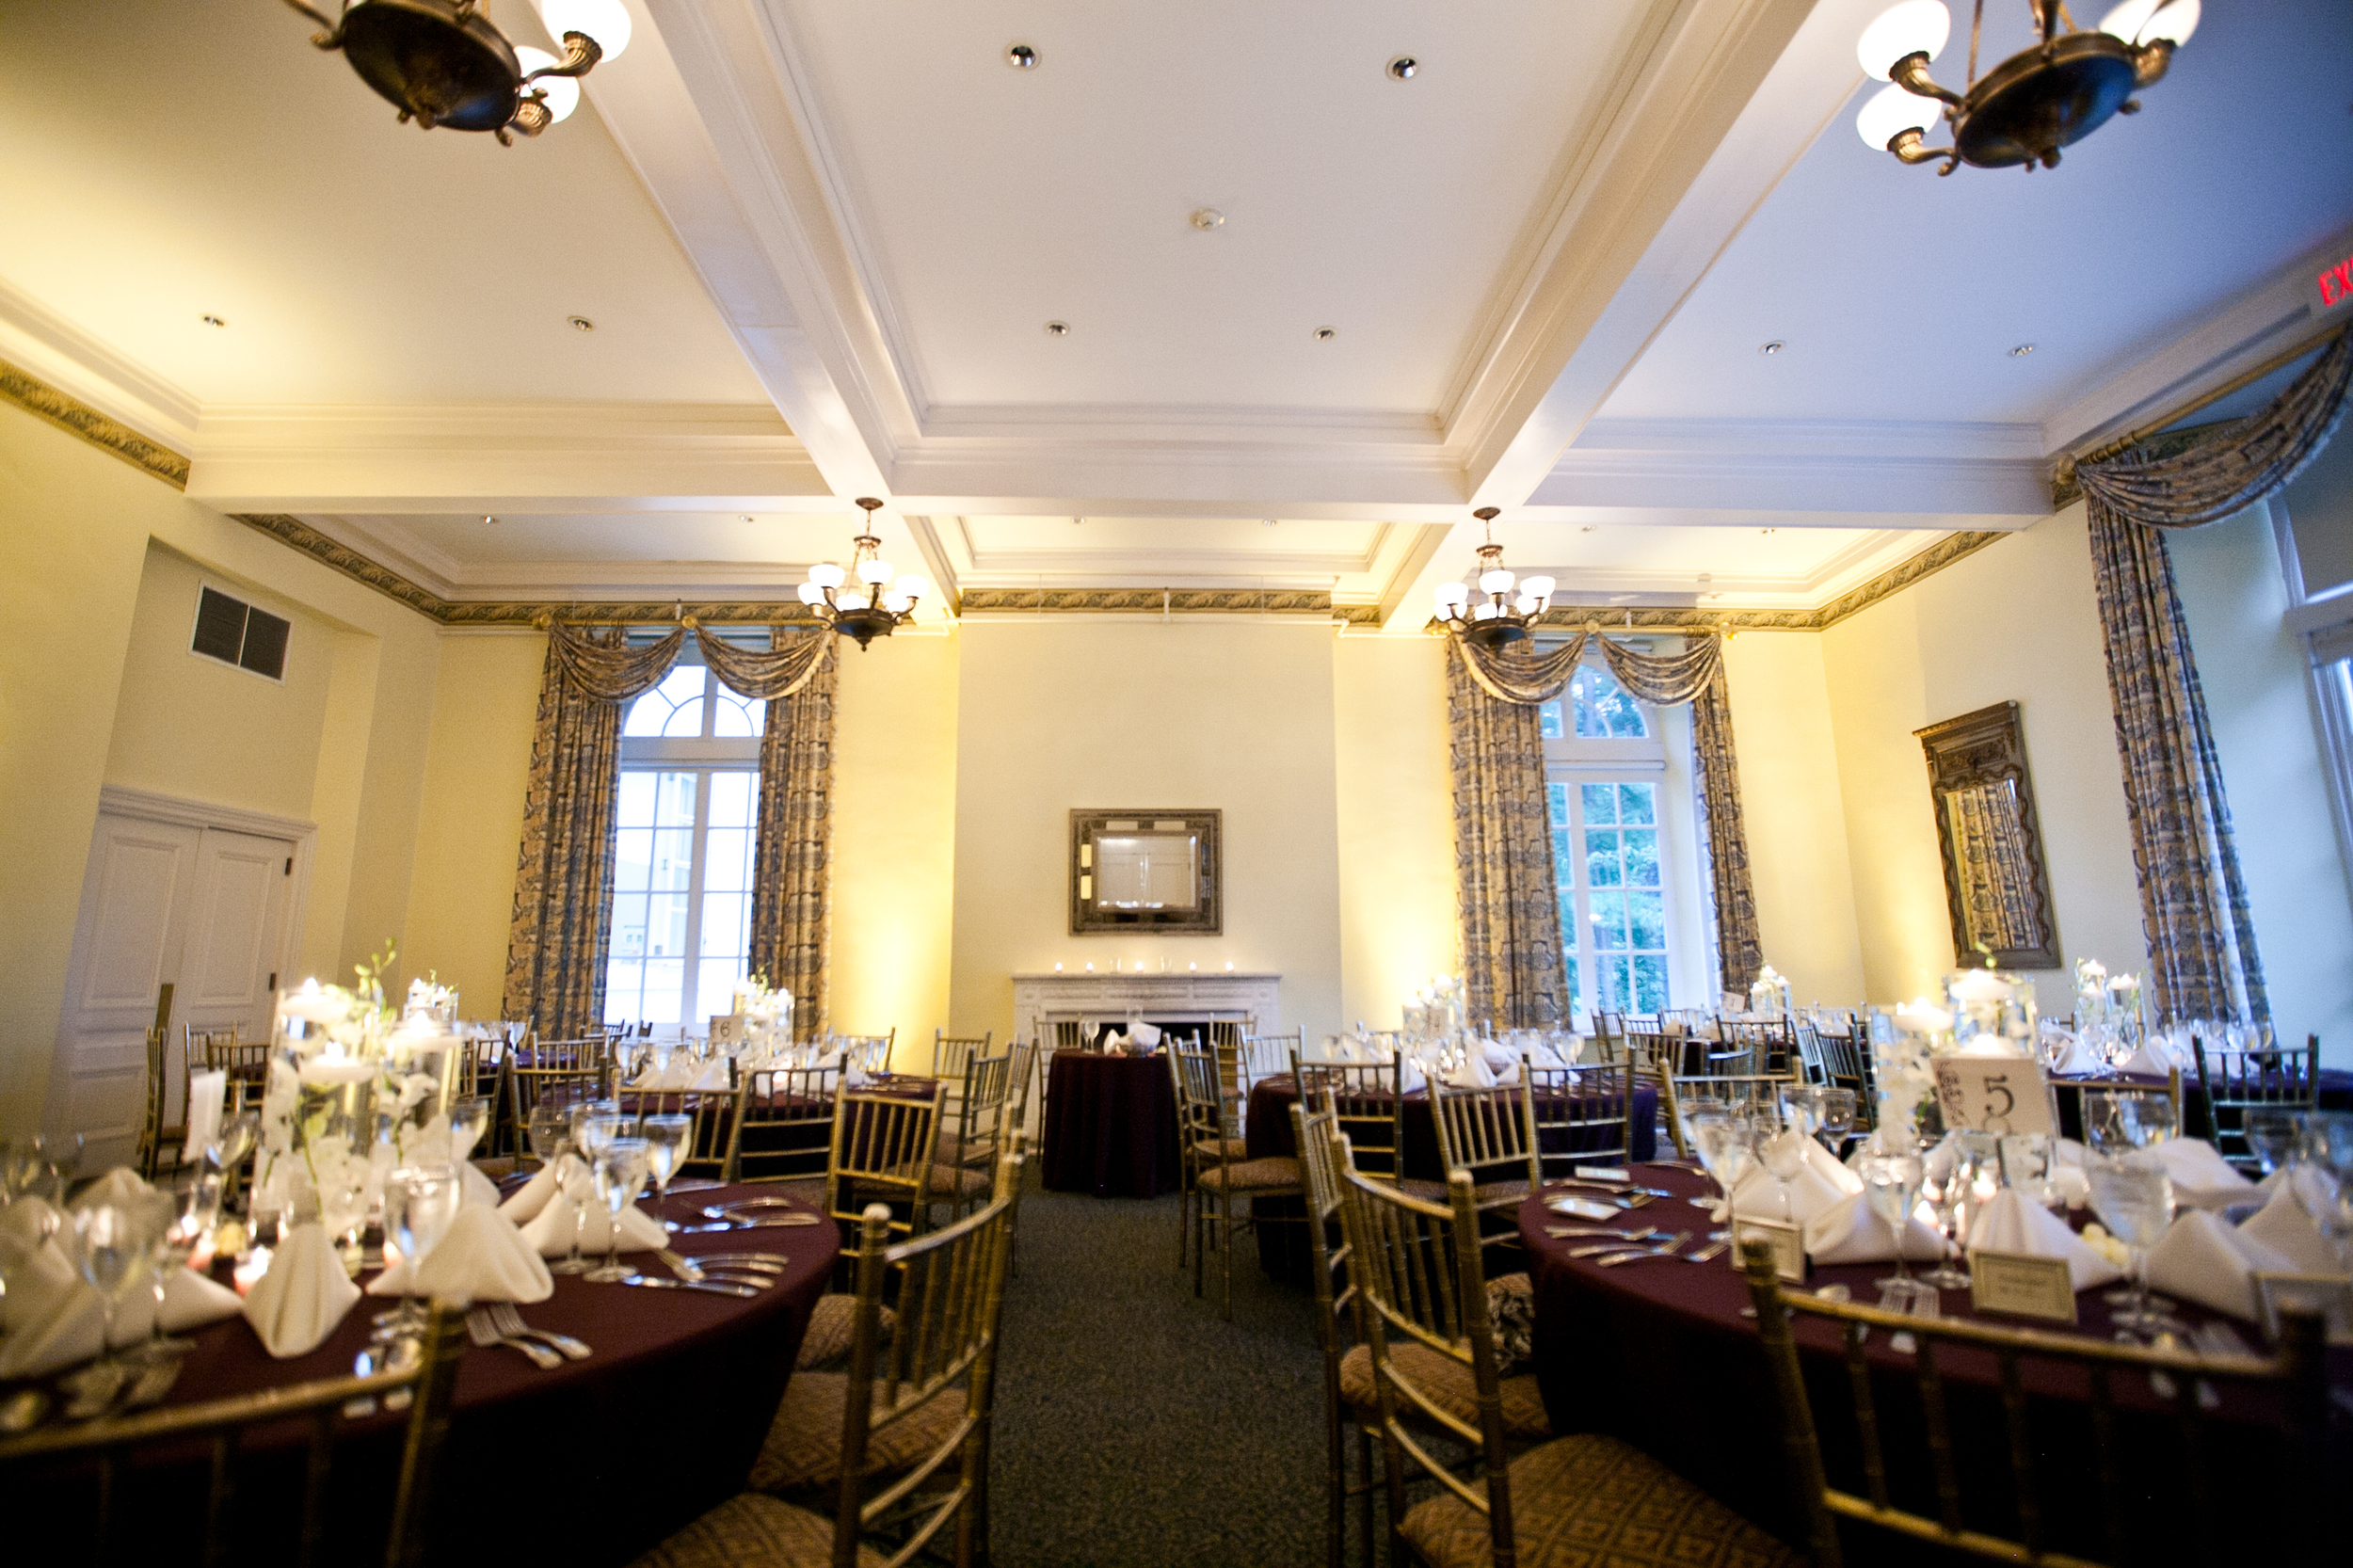 NYC-Wedding-Planner-Andrea-Freeman-Events-Wadsworth-Mansion-CT-13.jpg